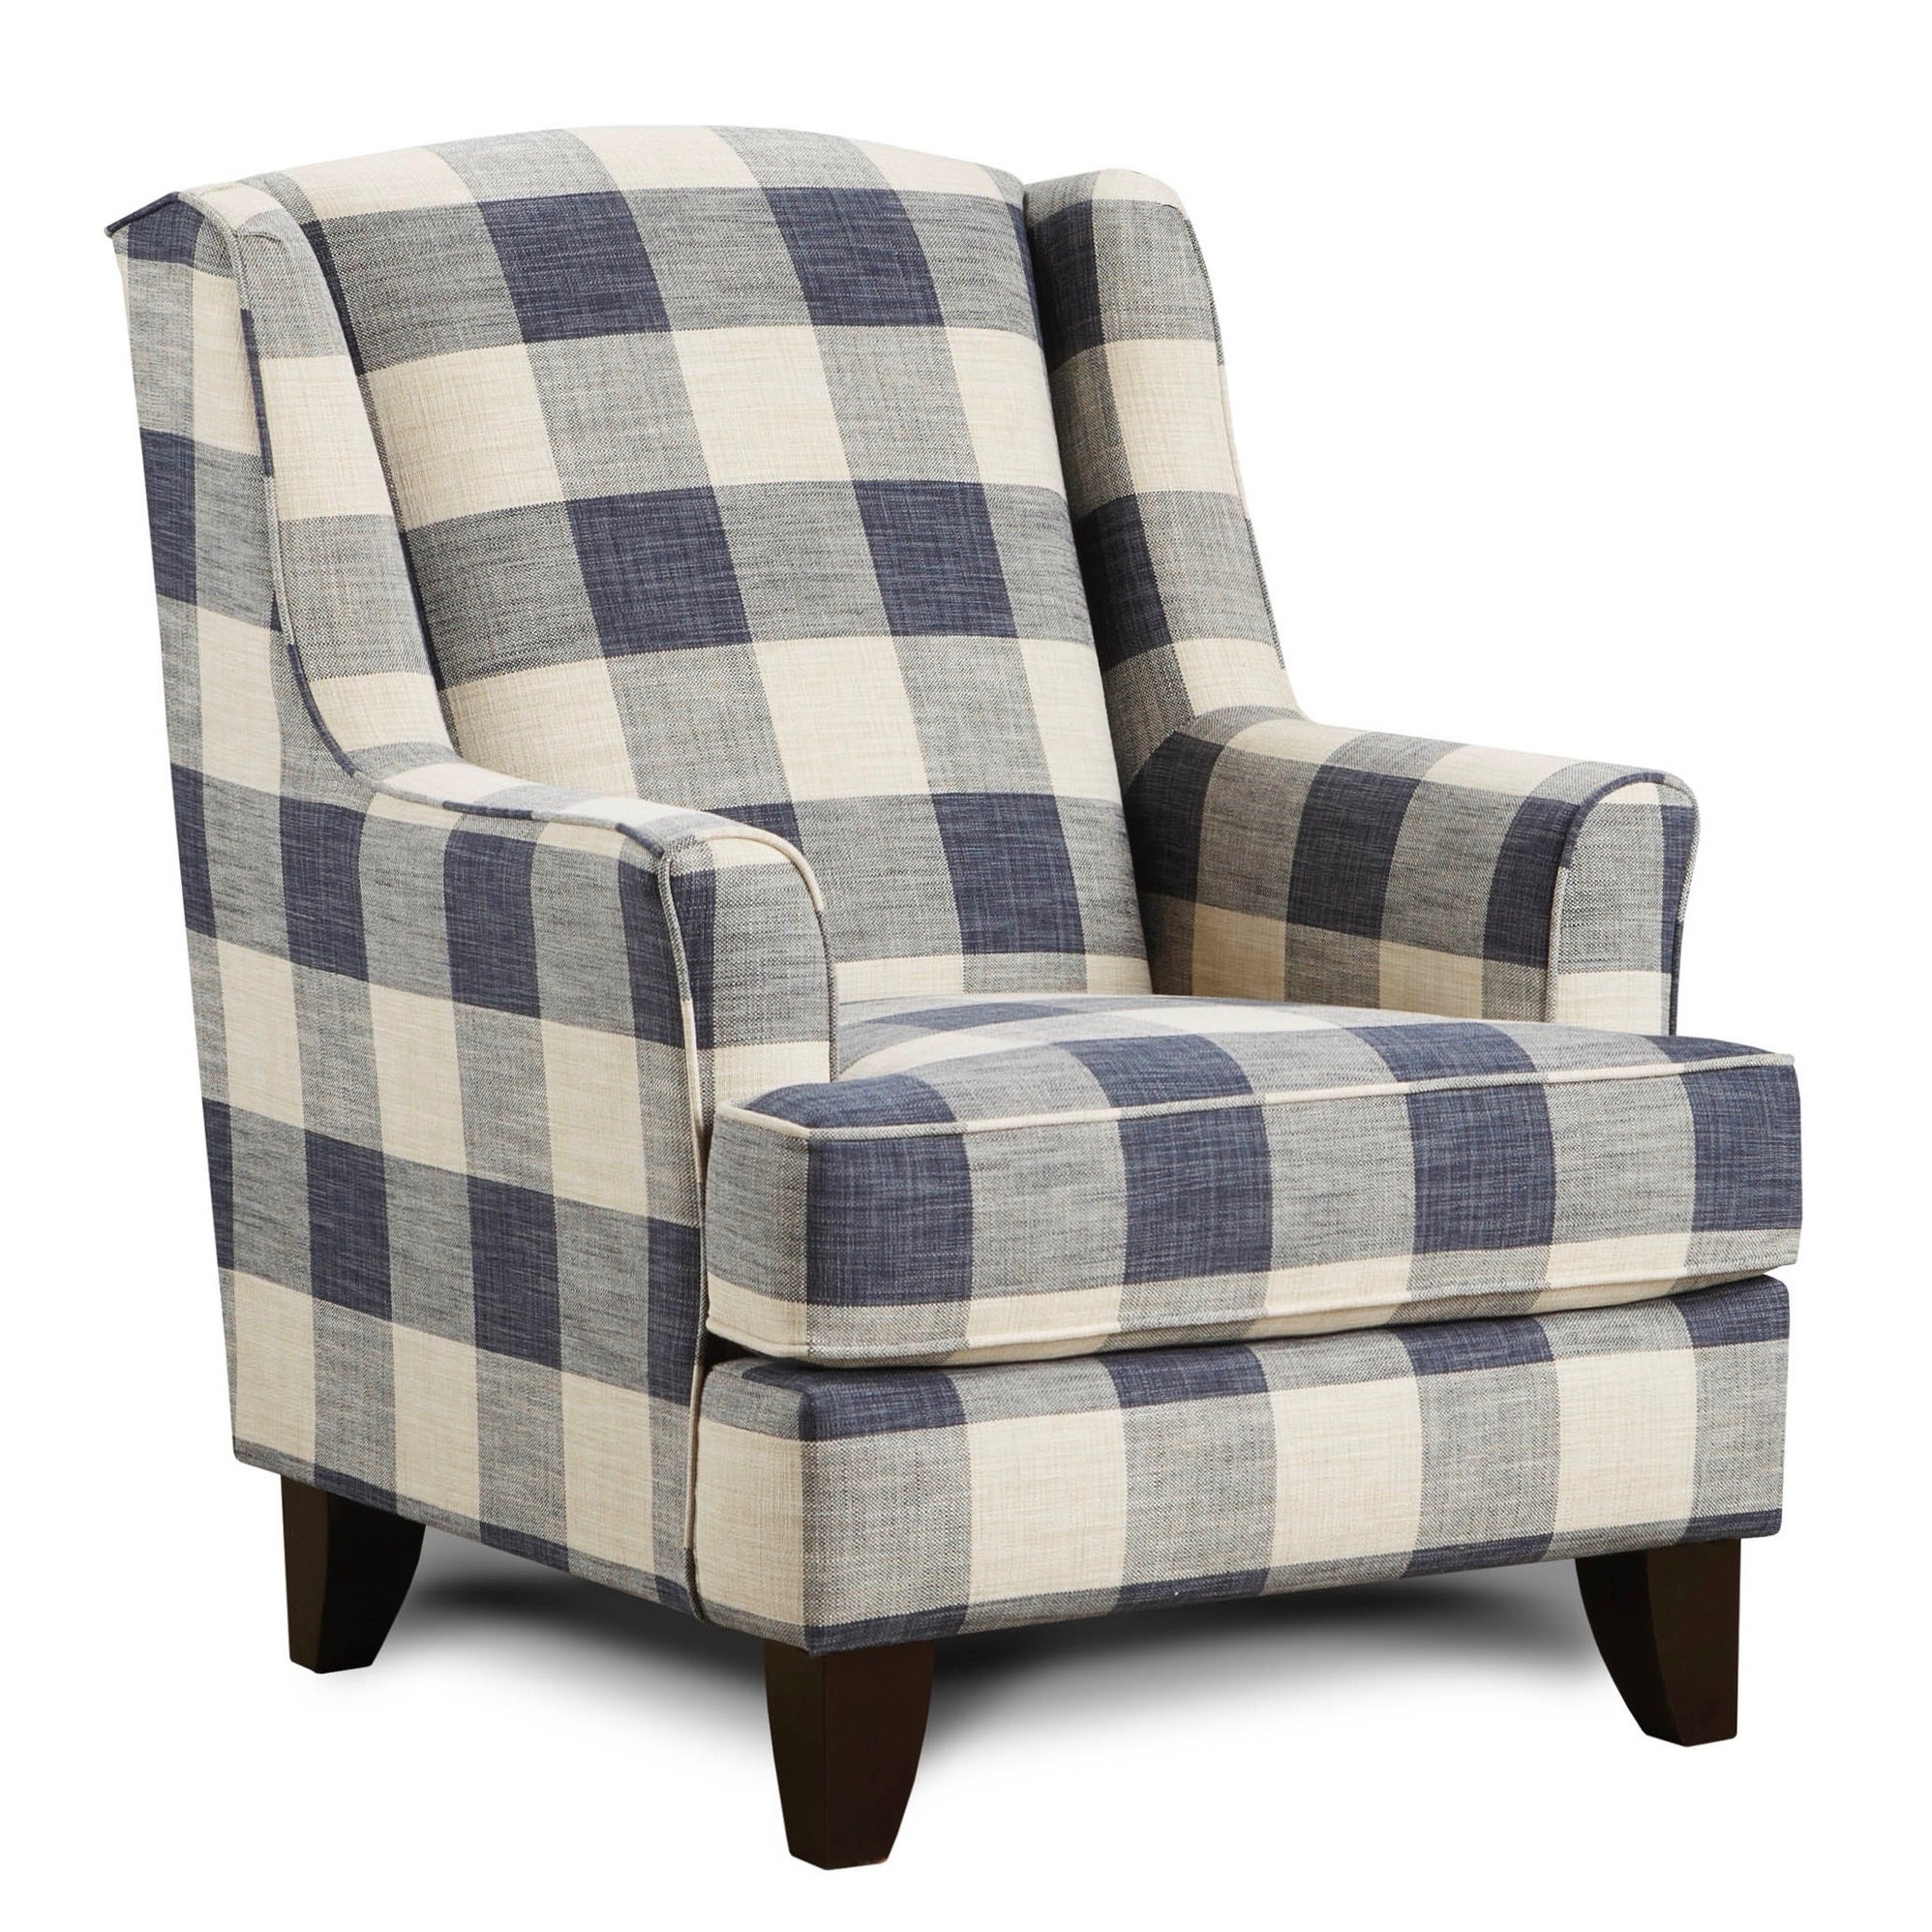 Terrific Yucatan Indigo Accent Chair Gmtry Best Dining Table And Chair Ideas Images Gmtryco